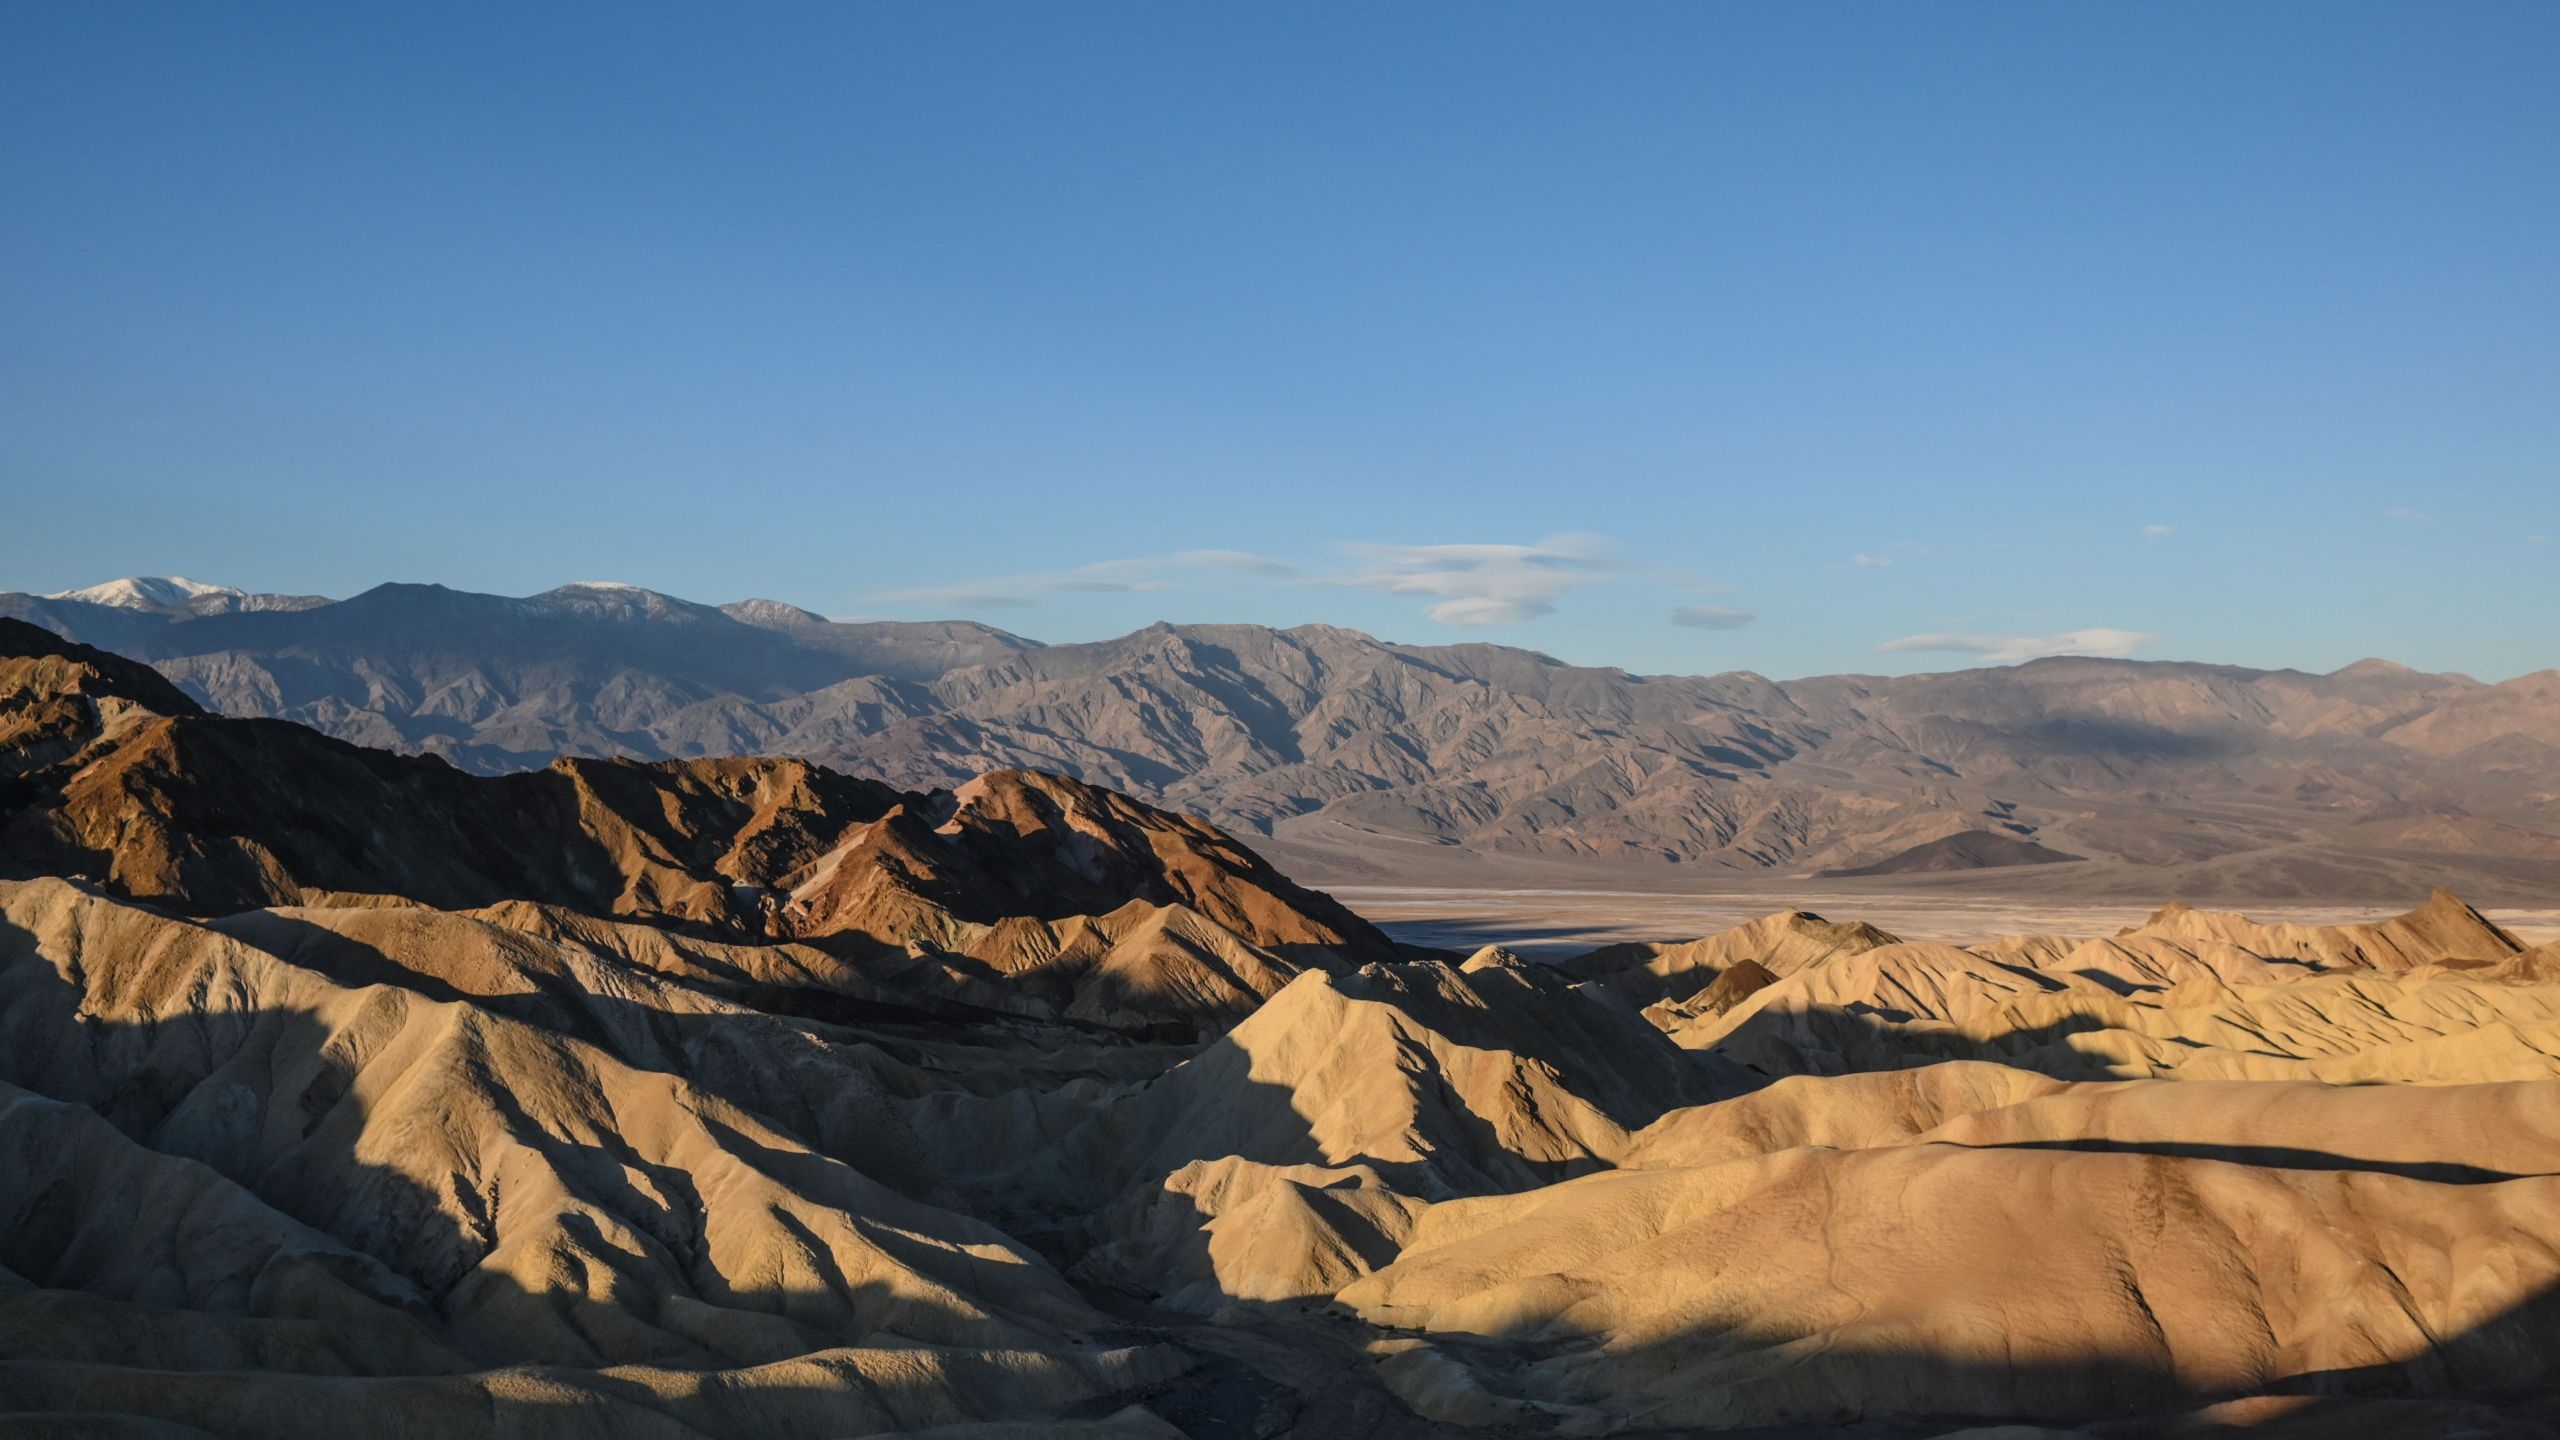 The view from Zabriskie Point in Death Valley is pictured at sunrise on Feb. 26, 2019. (Credit: Eric Baradat / AFP / Getty Images)